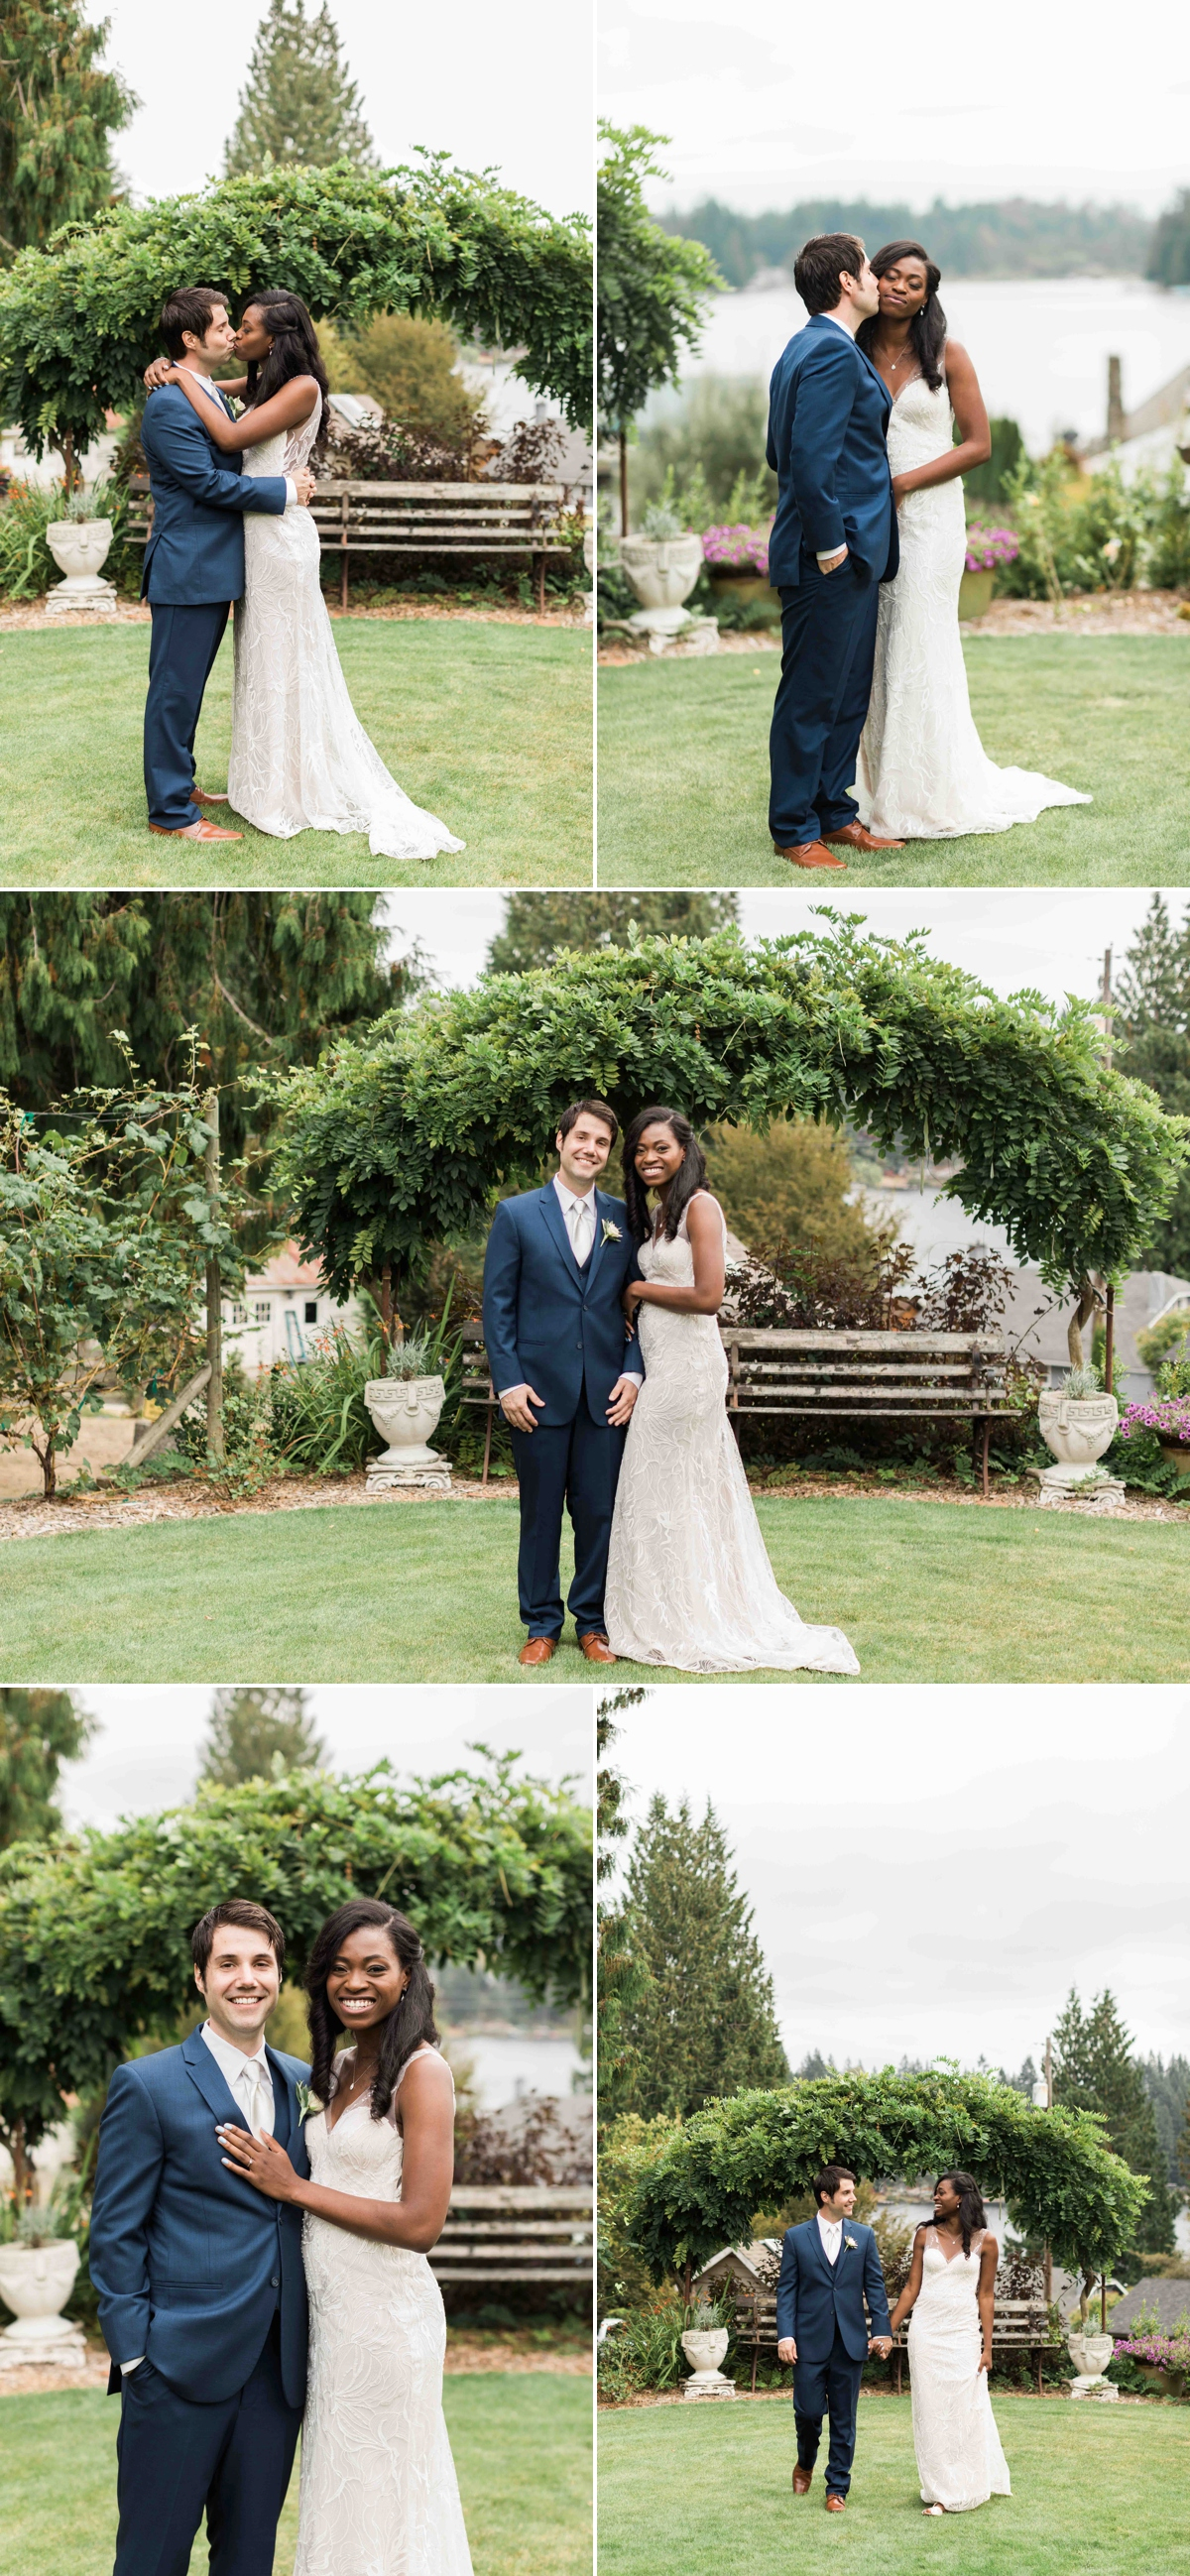 Bride and groom in front of beautiful arbor at Green Gates at Flowing Lake. Photographs by Joanna Monger Photography, Award Winning Snohomish Wedding Photographer.